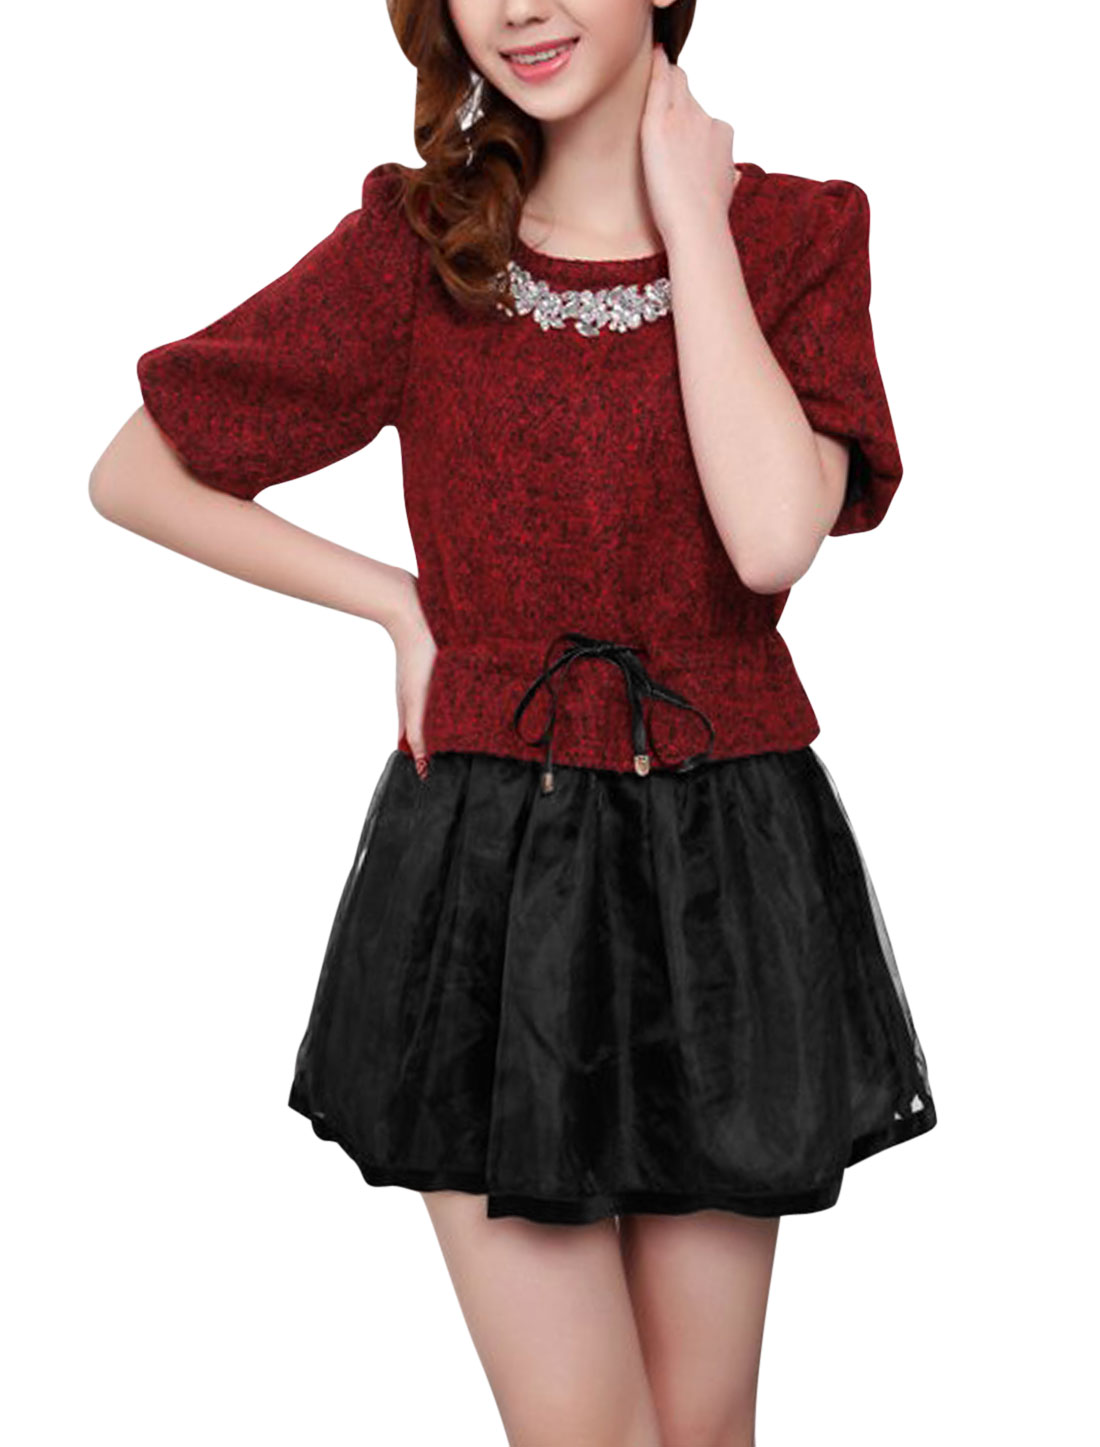 Ladies Burgundy Round Neck Short Sleeves Hidden Zipper Back Drawstring Waist Dress S